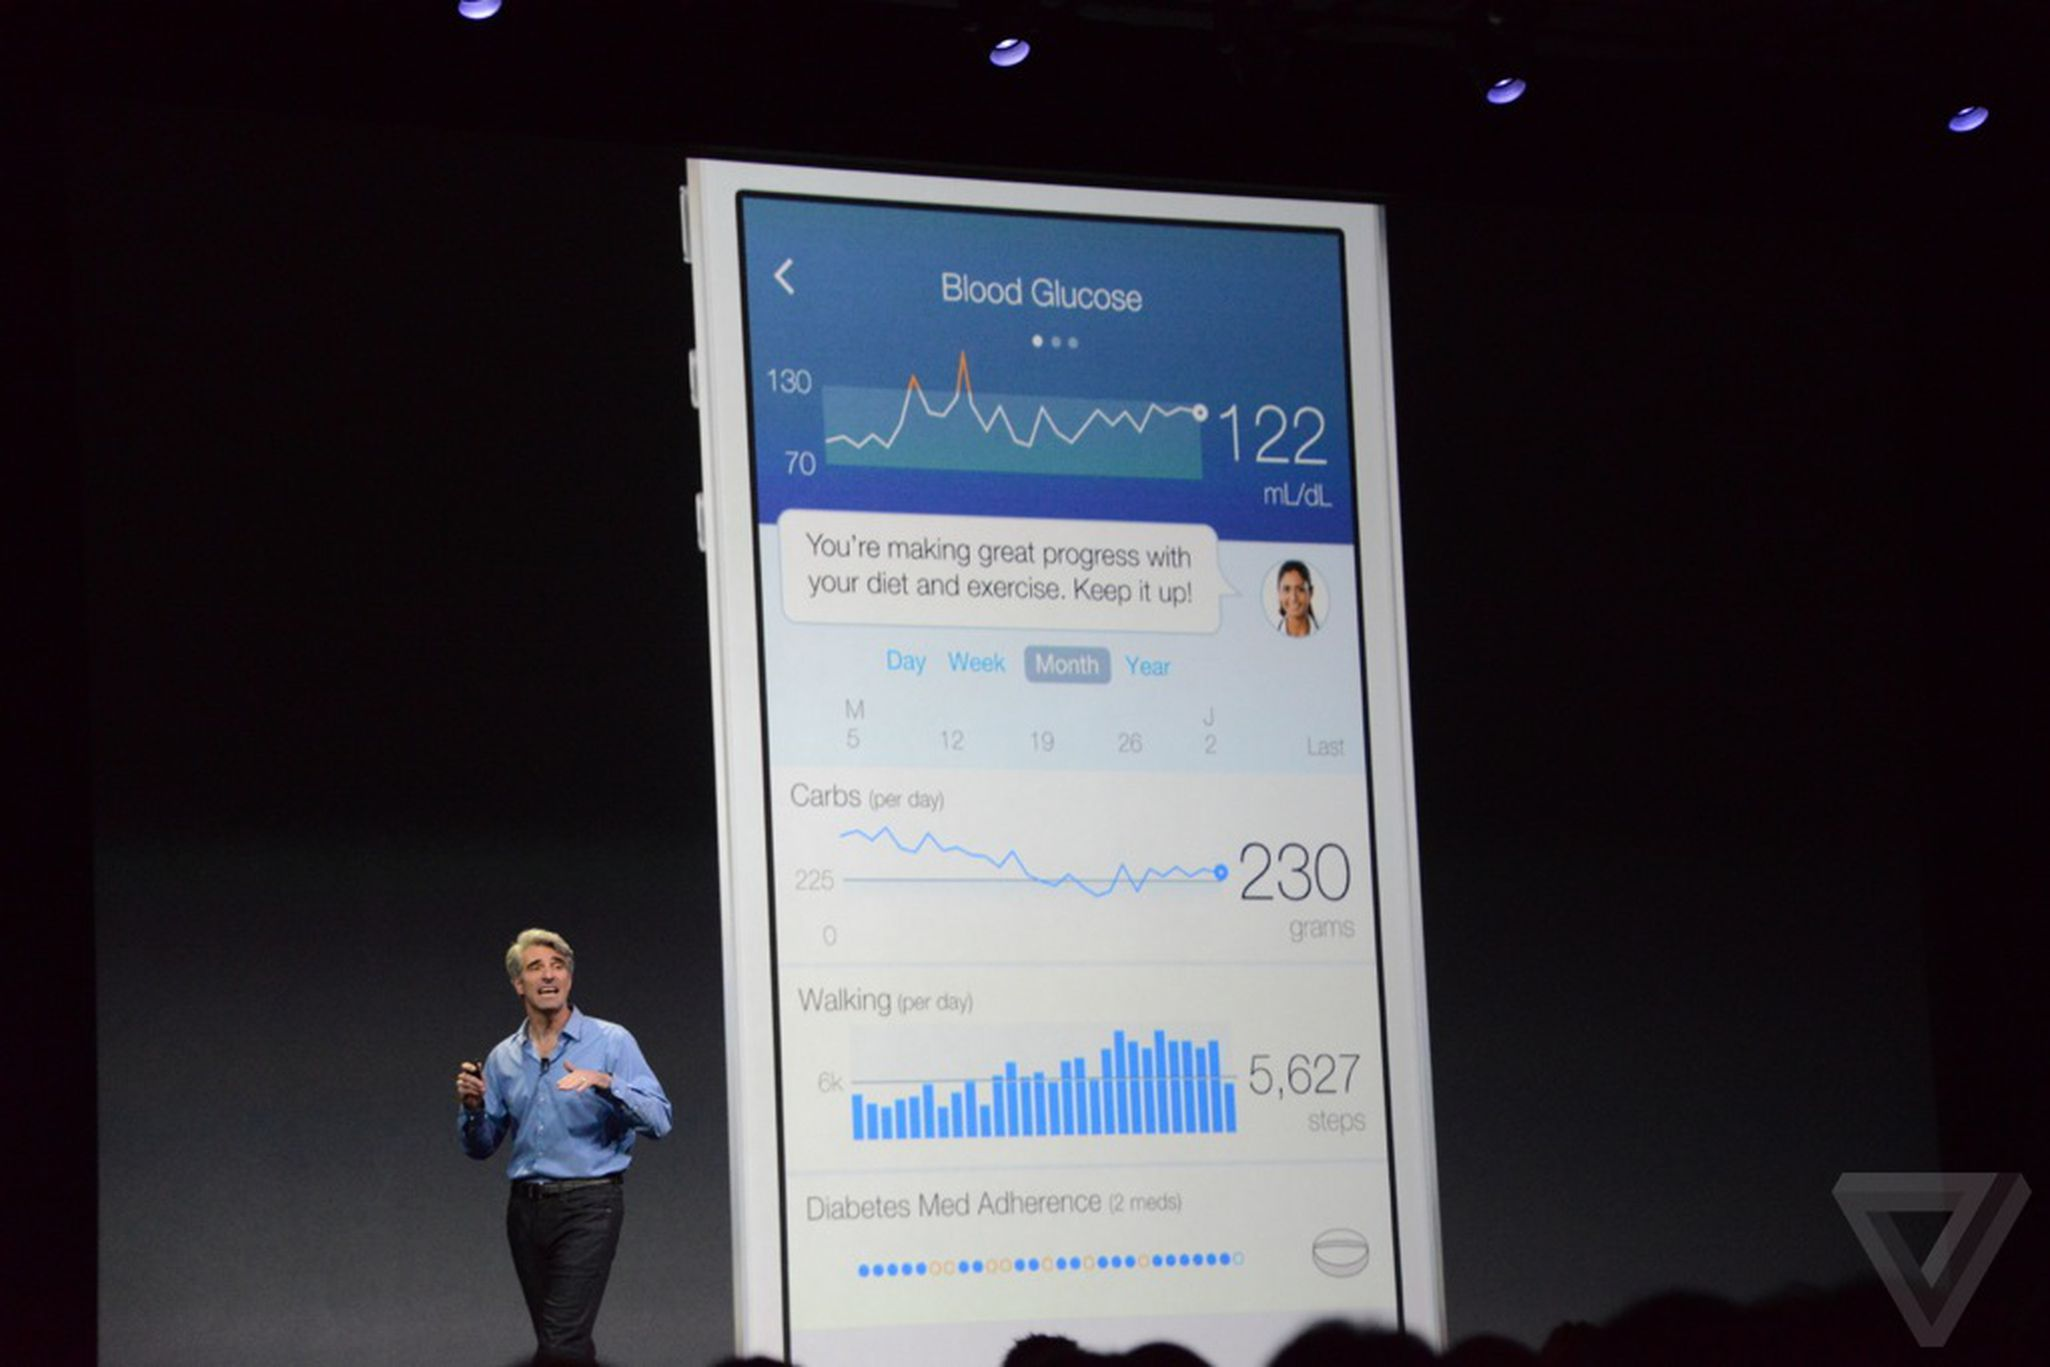 How Apple and Google plan to reinvent health care | The Verge